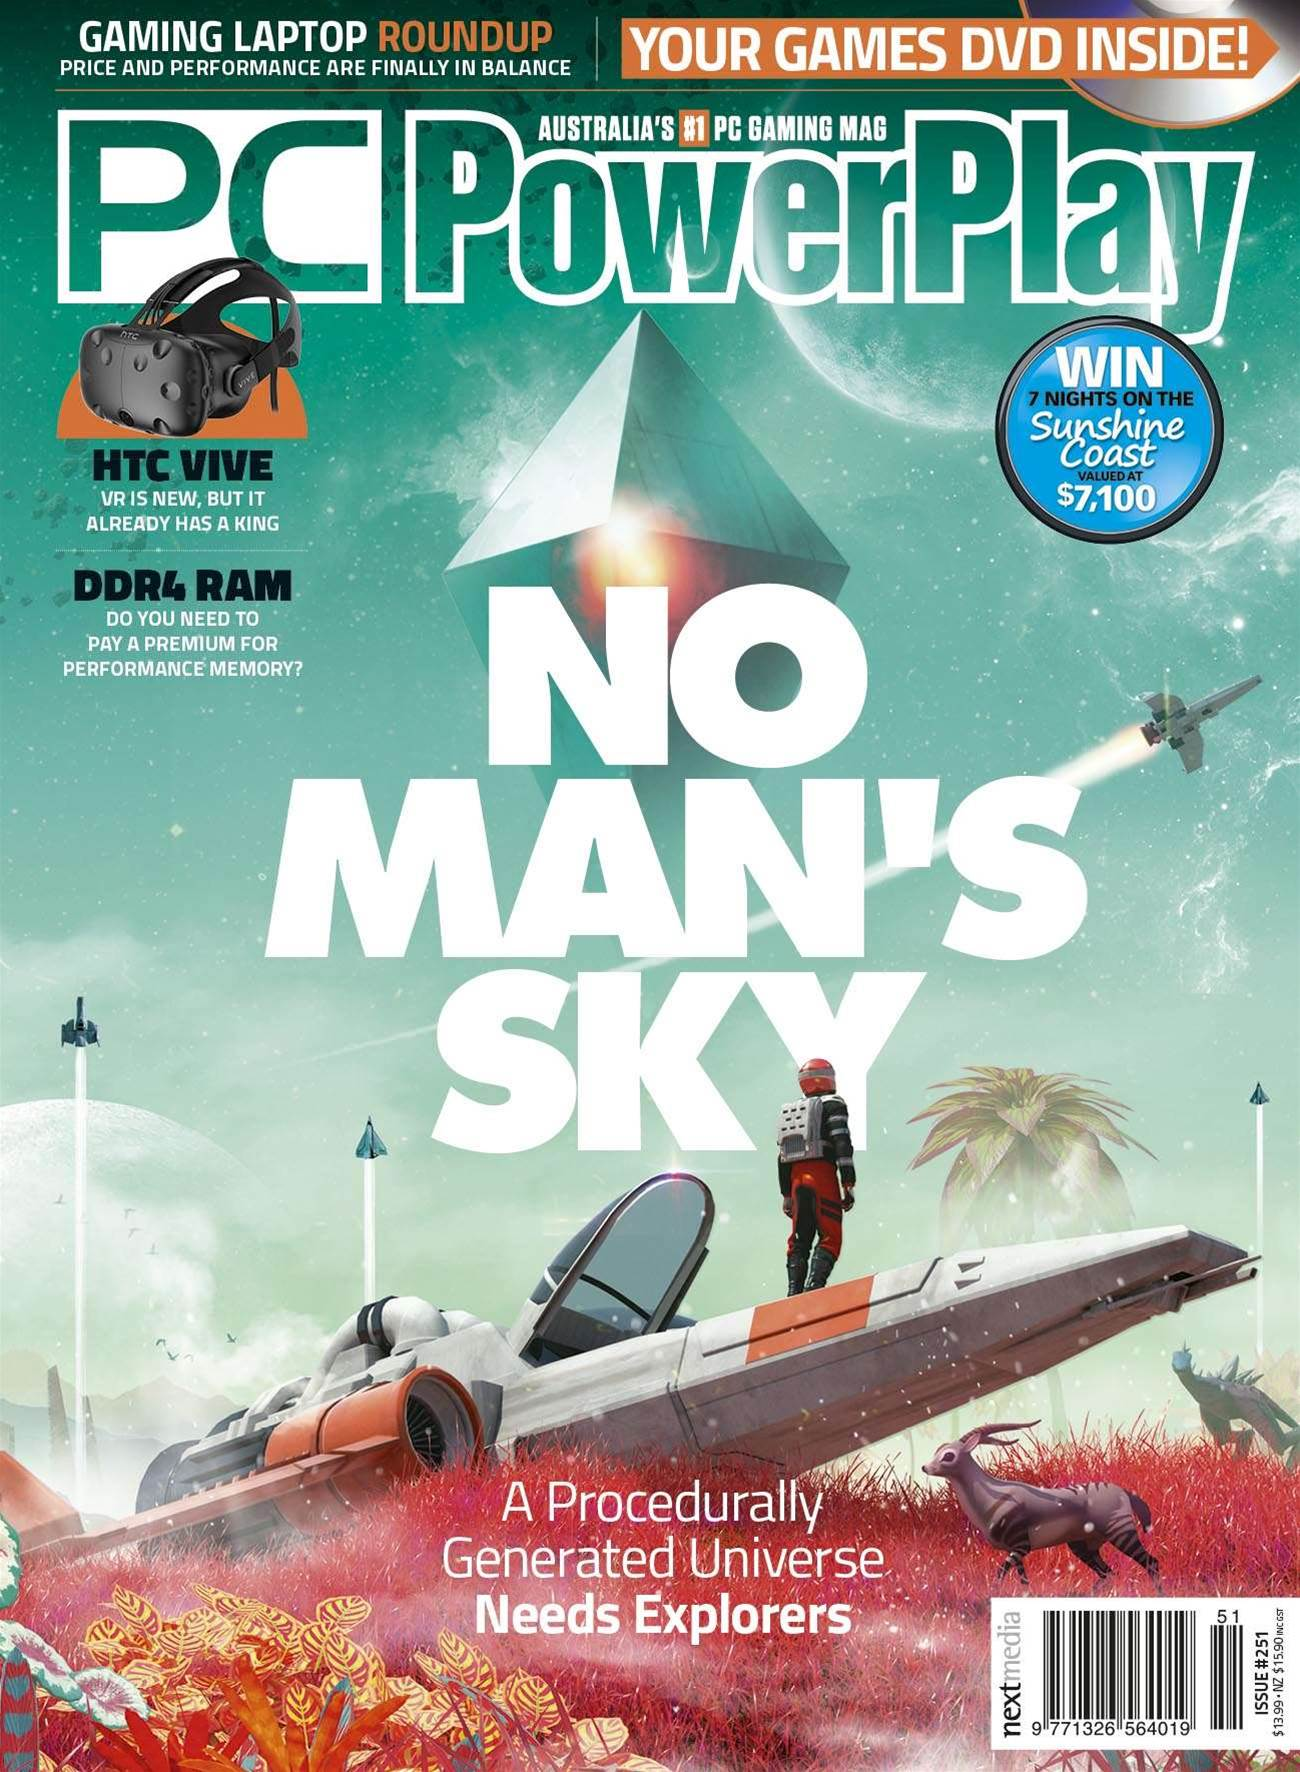 PC PowerPlay #251 Out Now!